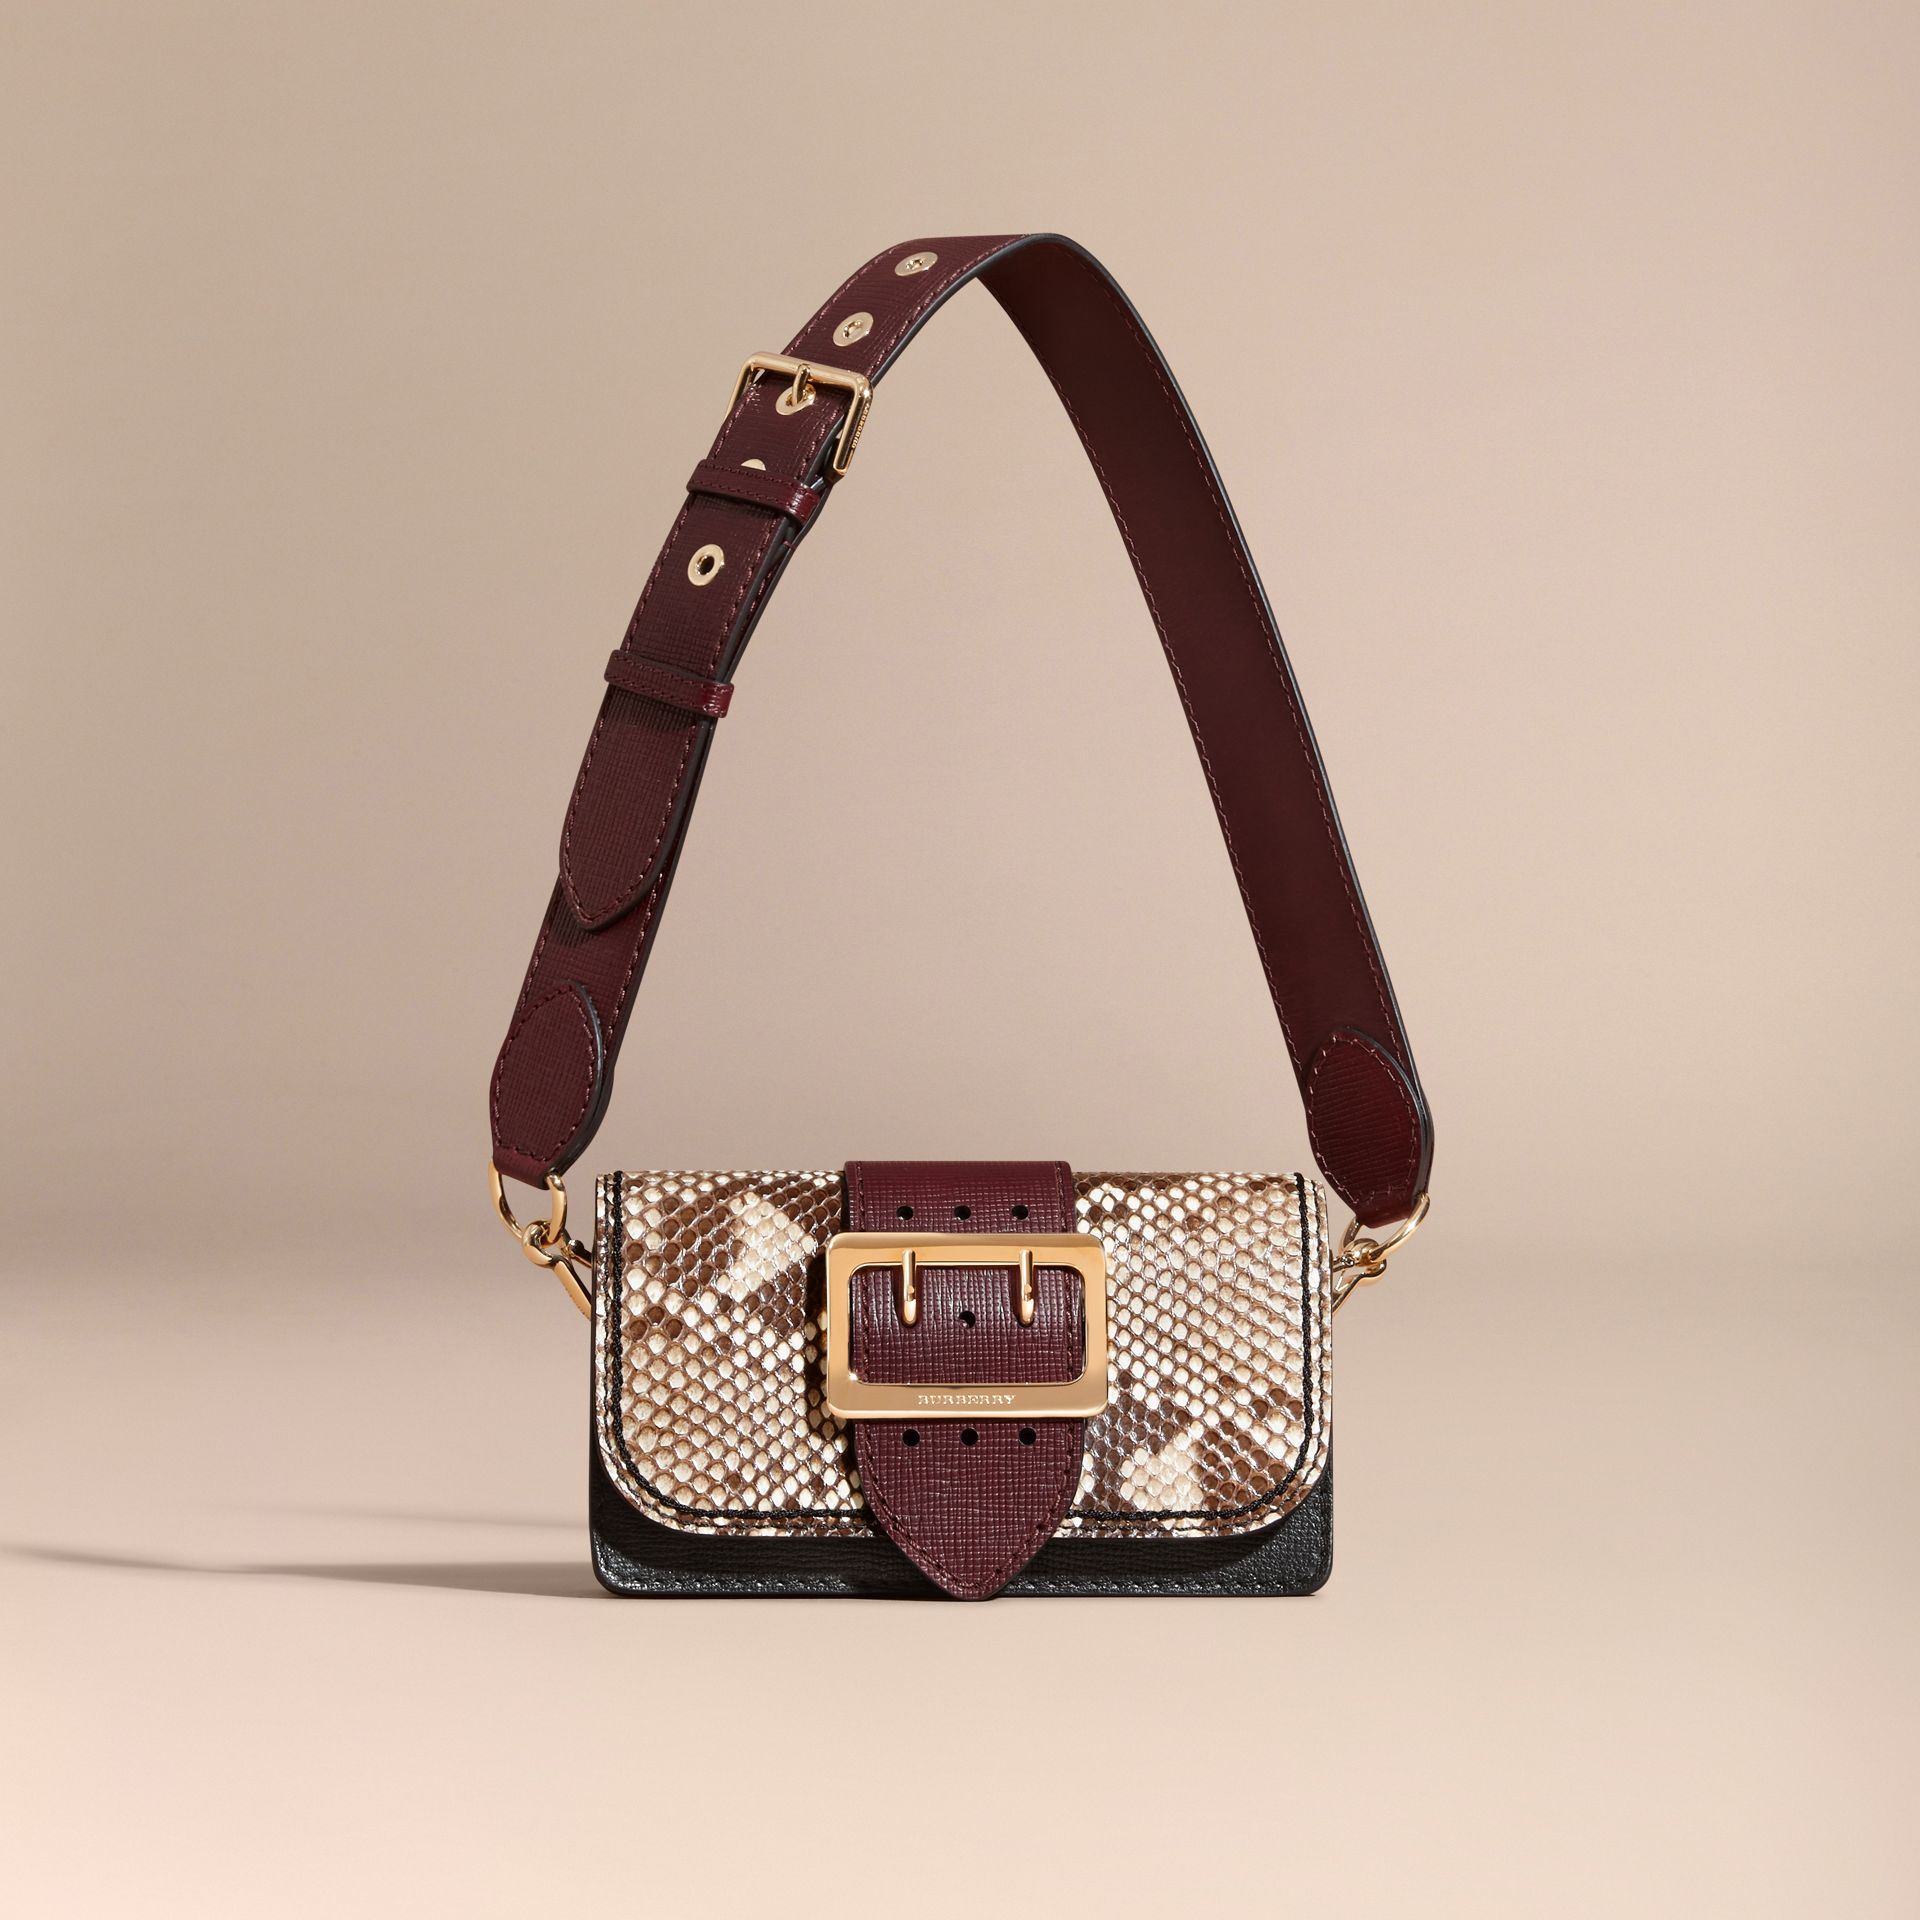 Natural / burgundy The Small Buckle Bag in Python and Leather - gallery image 9